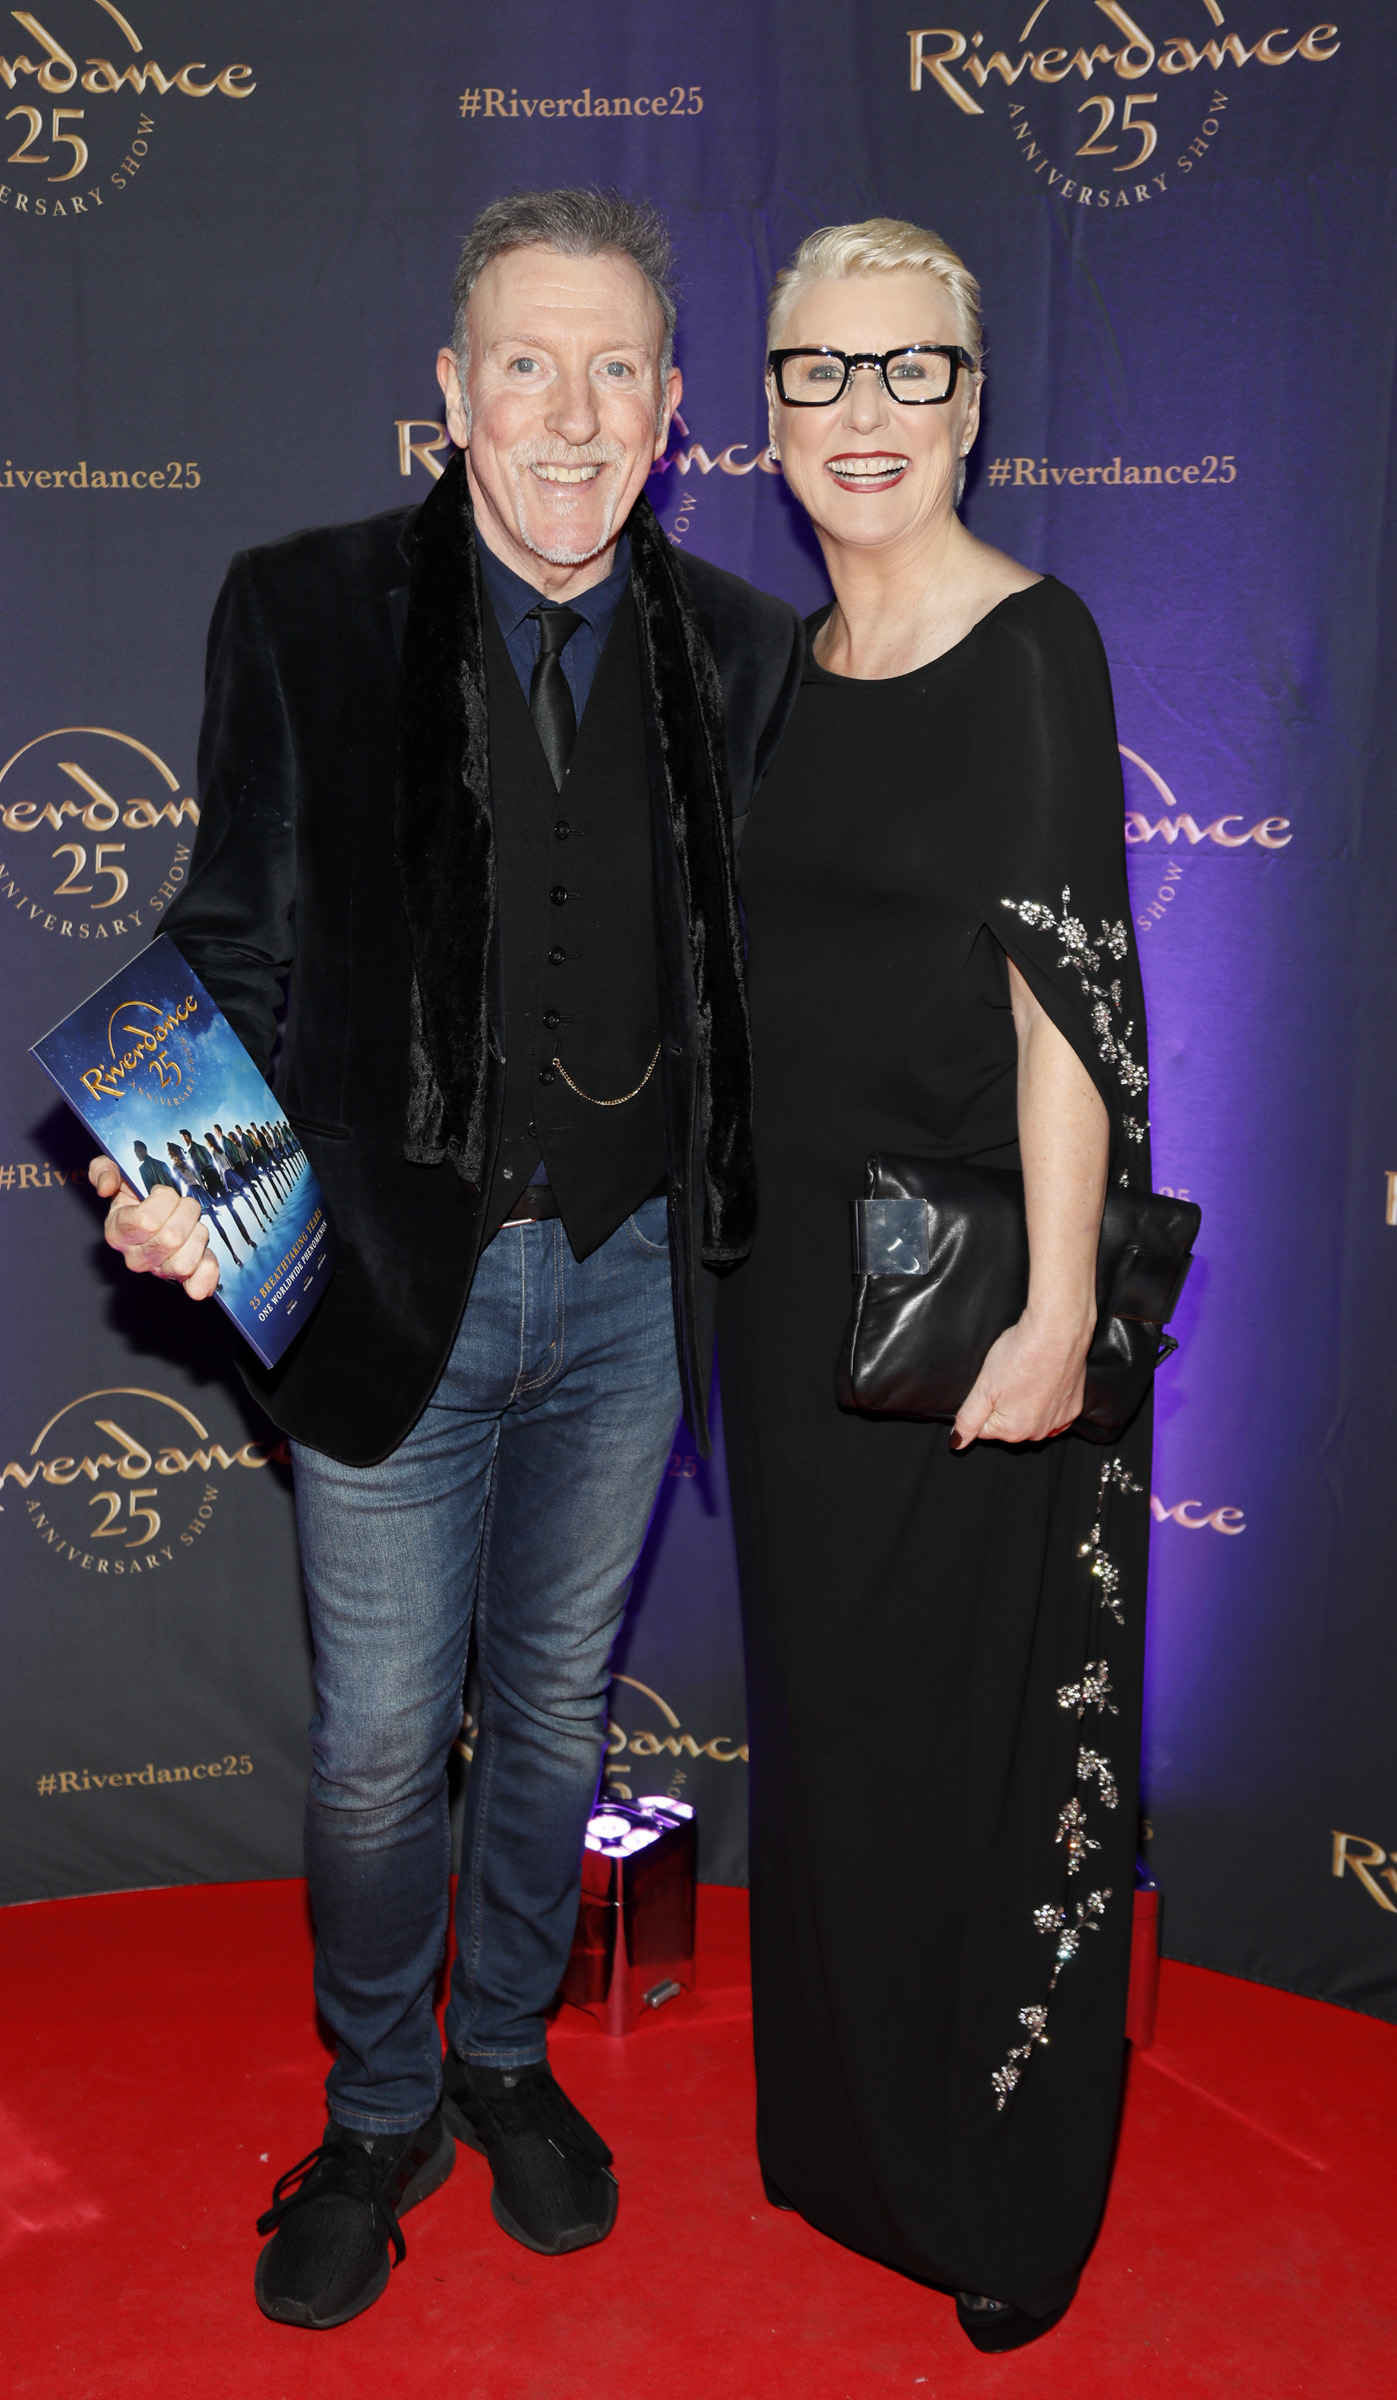 Paul Harrington and Moya Doherty at the historic gala performance of Riverdance 25th Anniversary show at 3Arena Dublin exactly 25 years to the day that Riverdance was first performed at the Point Depot.  Photo: Kieran Harnett